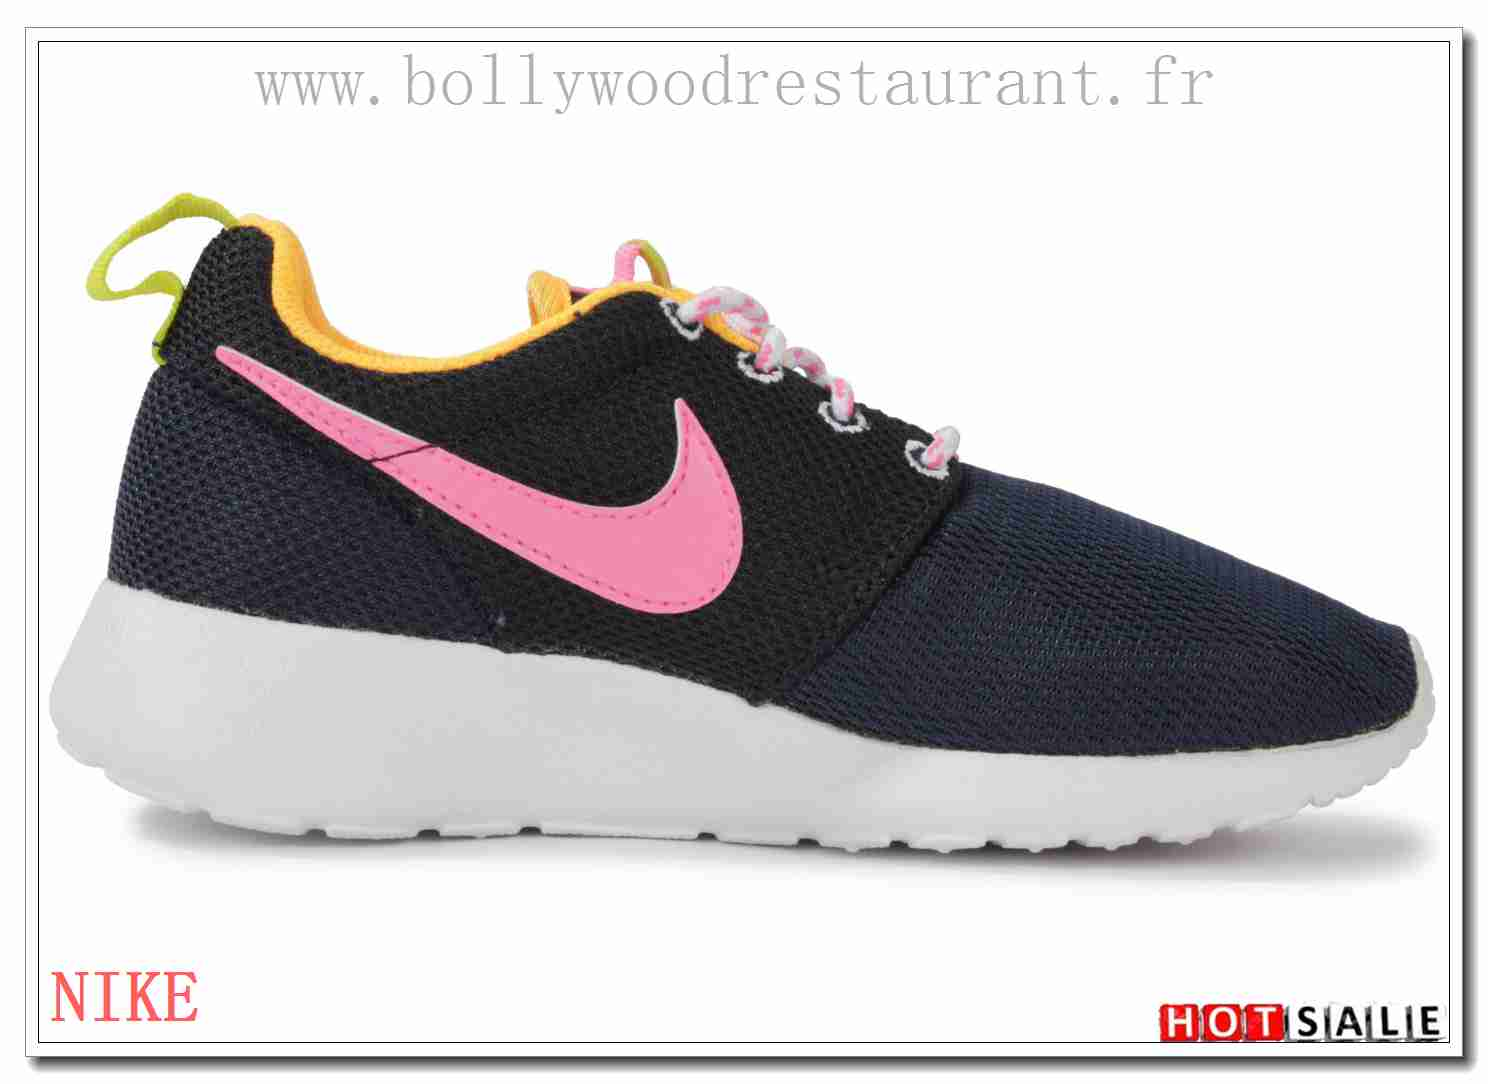 sports shoes 83595 4a0ec HI8936 Special Styles 2018 Nouveau style Nike Roshe Run - Femme Chaussures  - Soldes Pas Cher